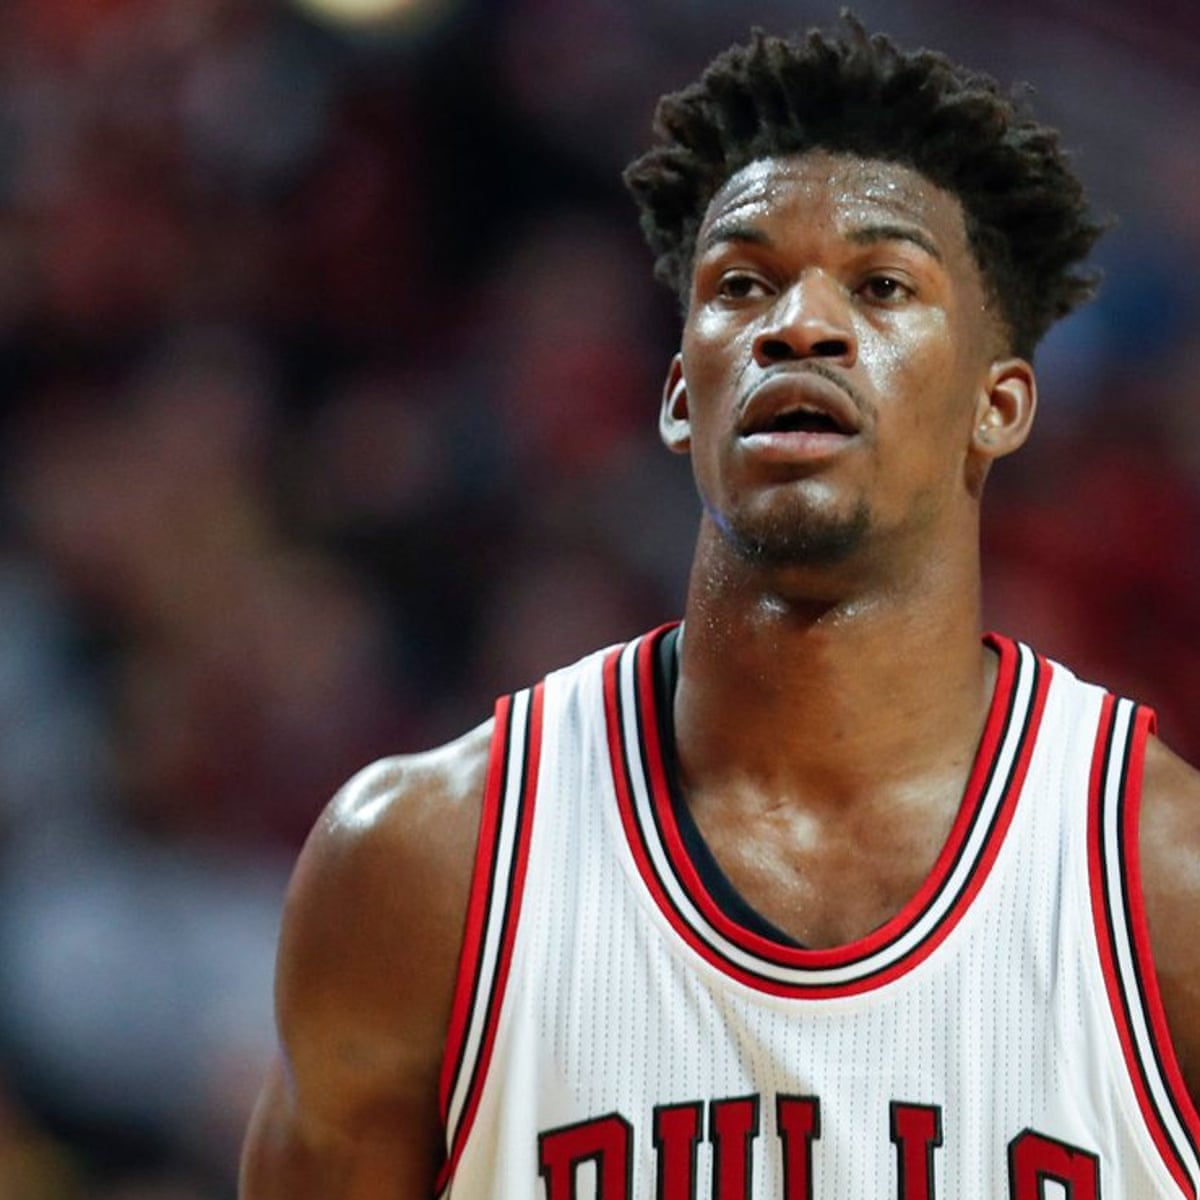 Nba Draft Blockbuster Jimmy Butler Trade Makes Wolves The Big Winners Chicago Bulls The Guardian